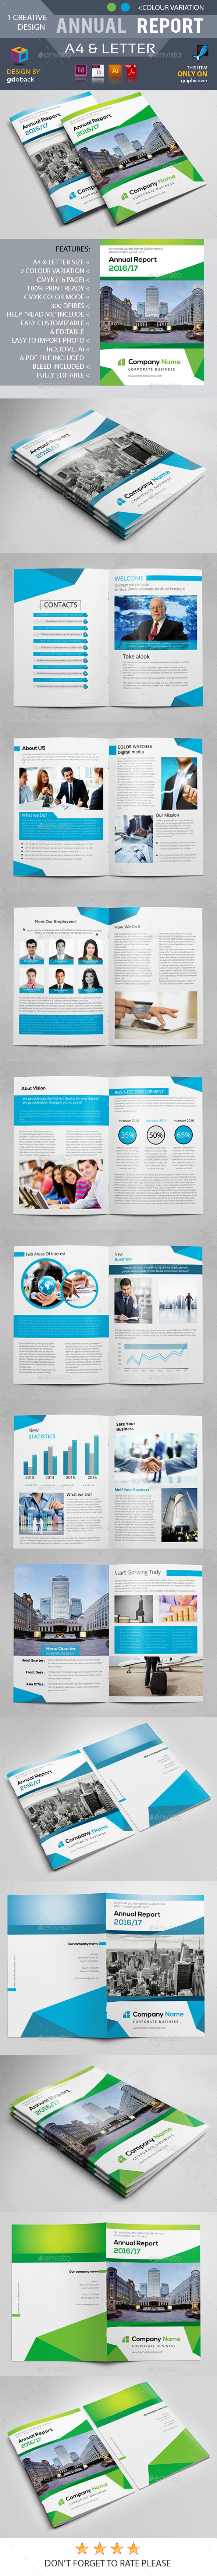 Annual Report Template Indd Vector Ai Download Here Http